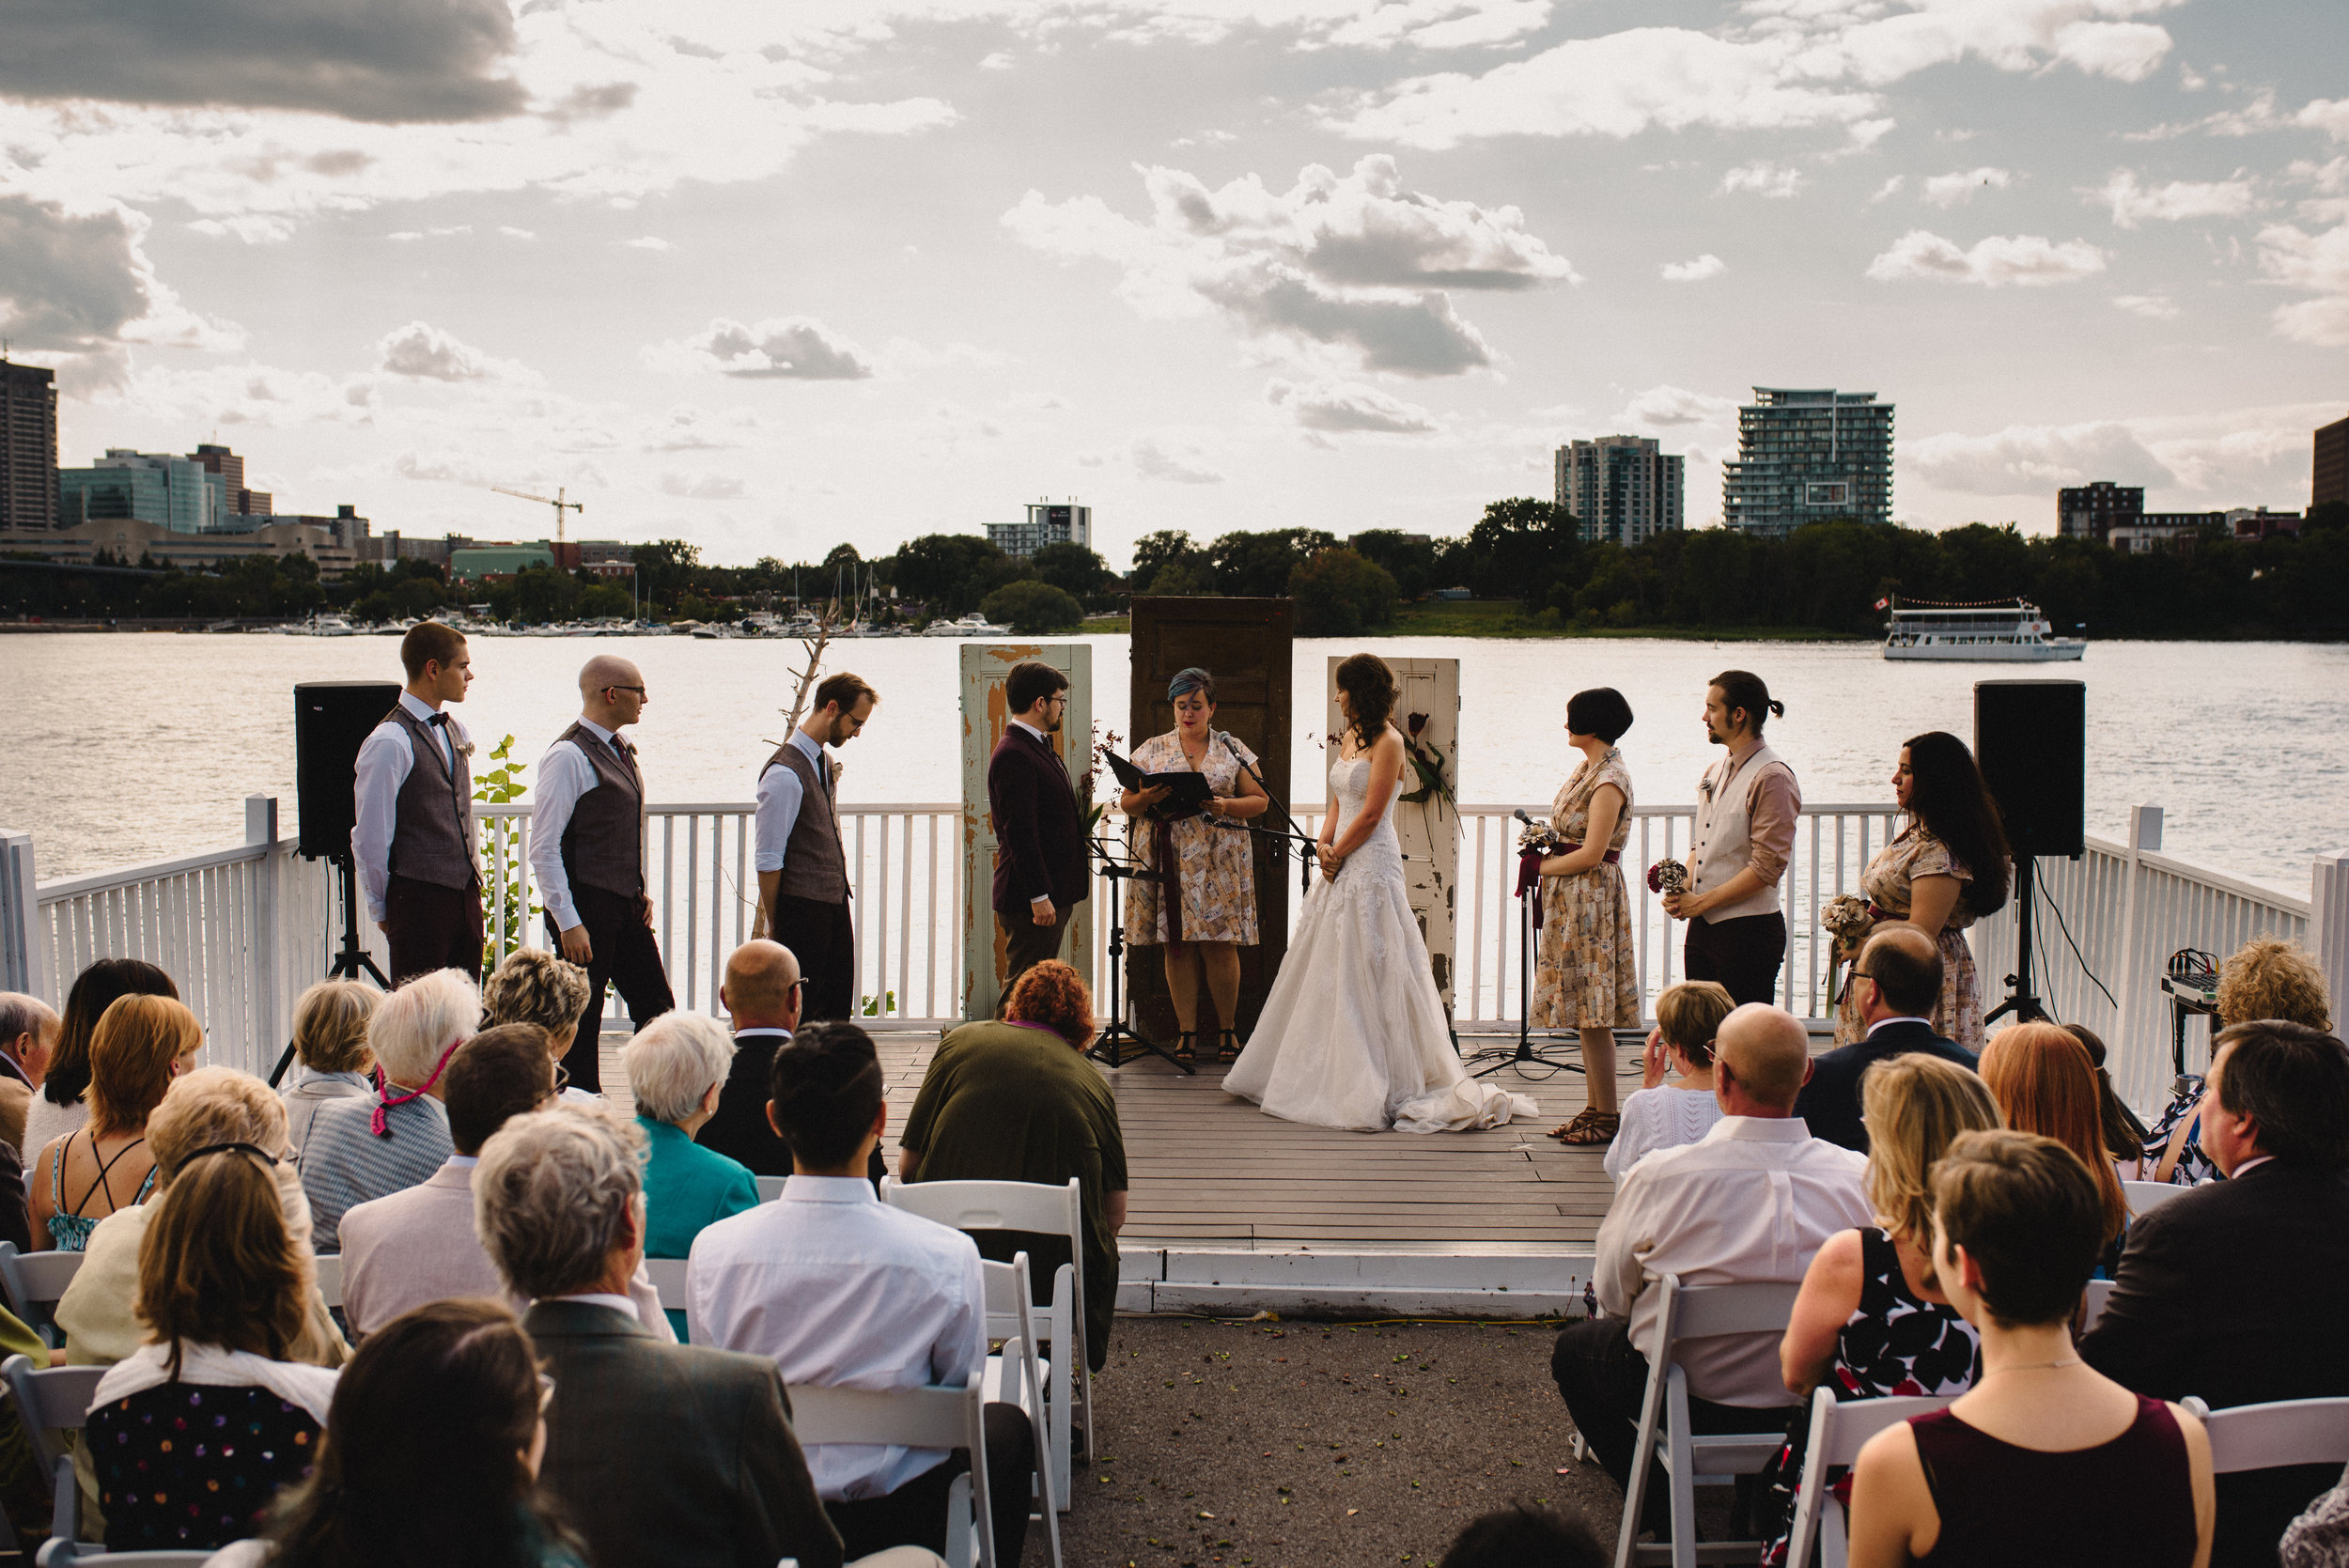 Mocha Tree Studios Ottawa Wedding and Engagement Photographer and Videographer Dark Moody Intimate Authentic Modern Romantic Cinematic Best Candid Ottawa Rowing Club 31